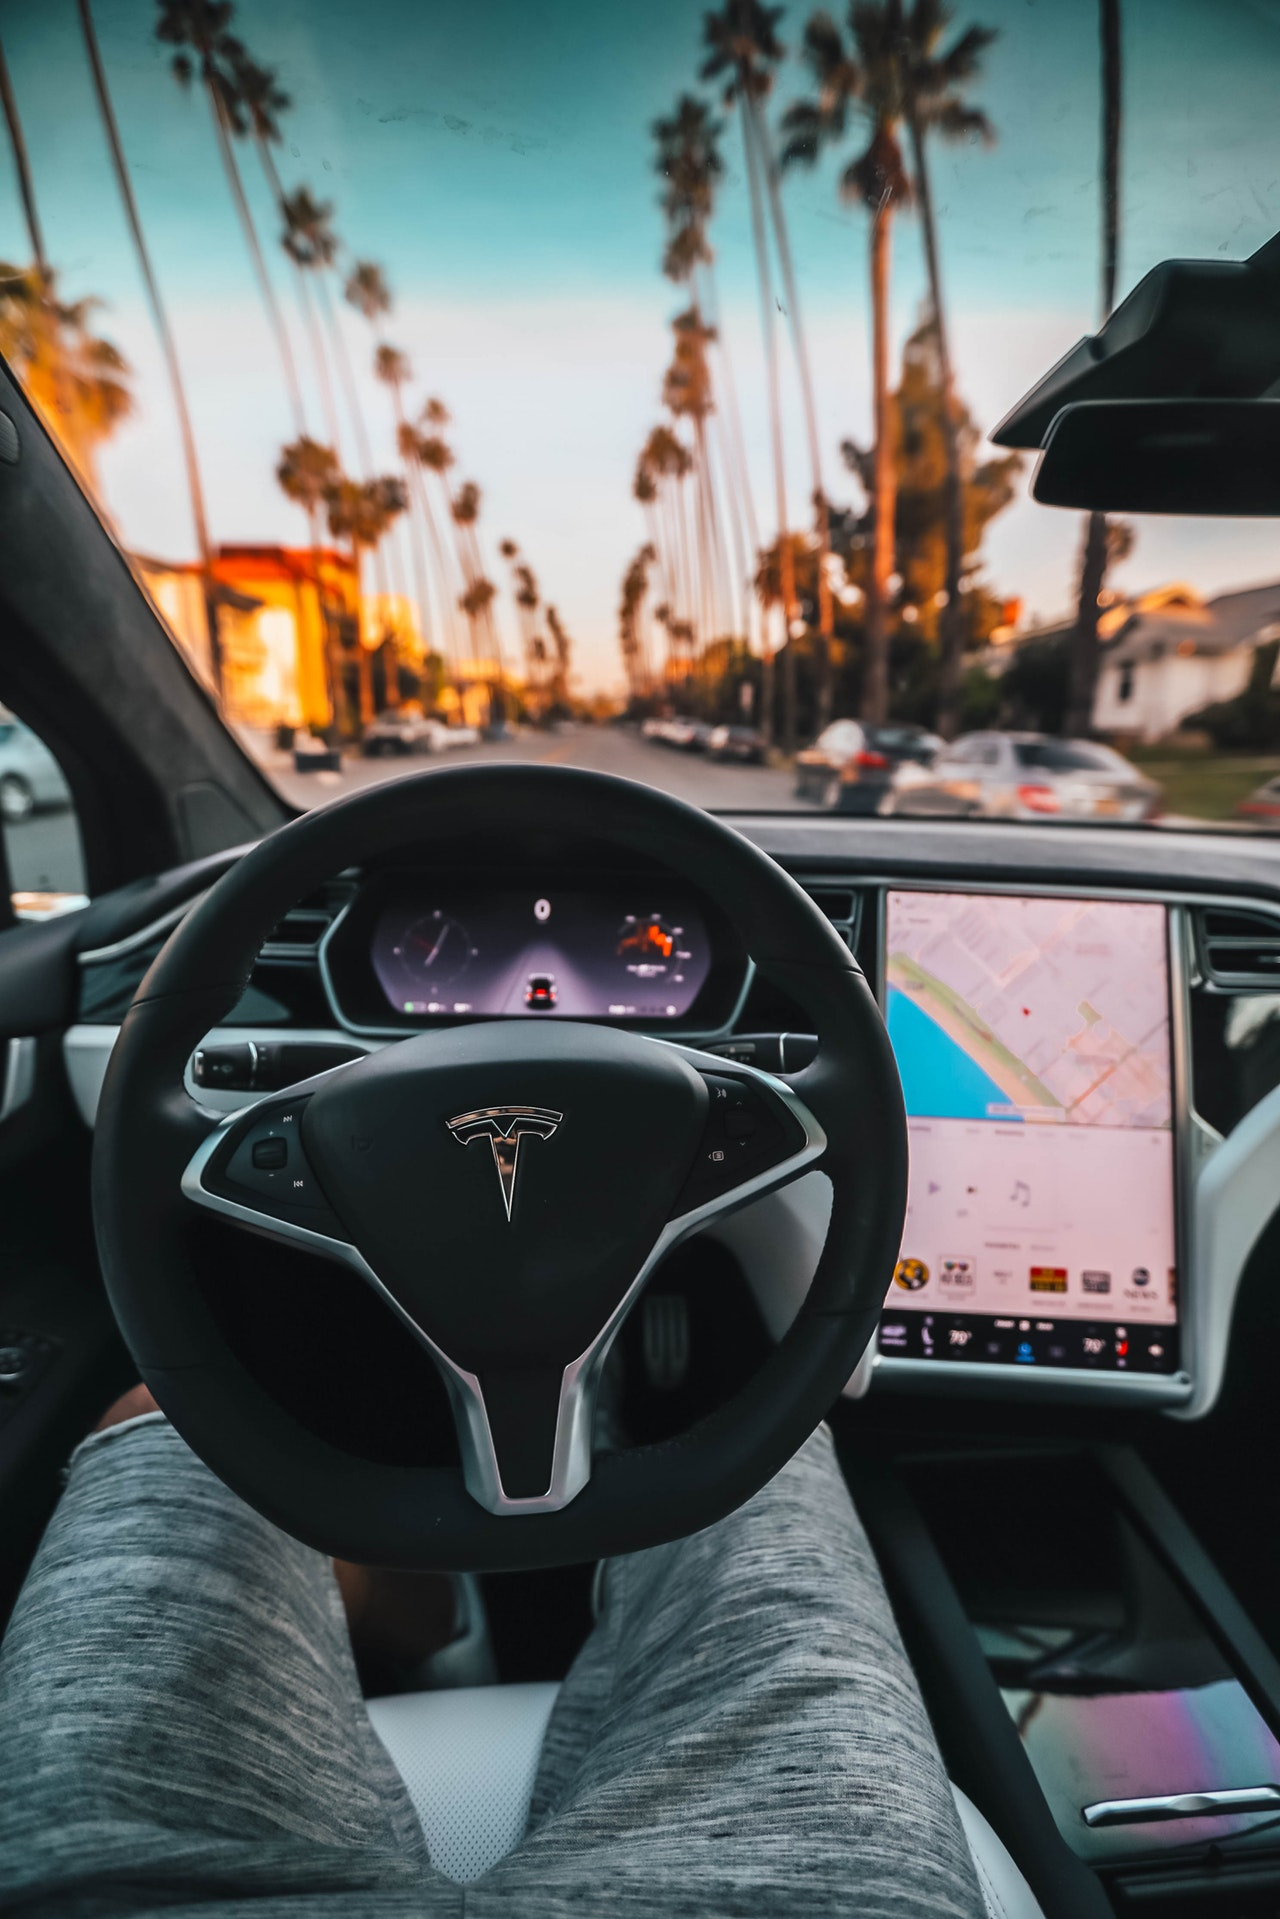 Electric Cars General Public Article Image